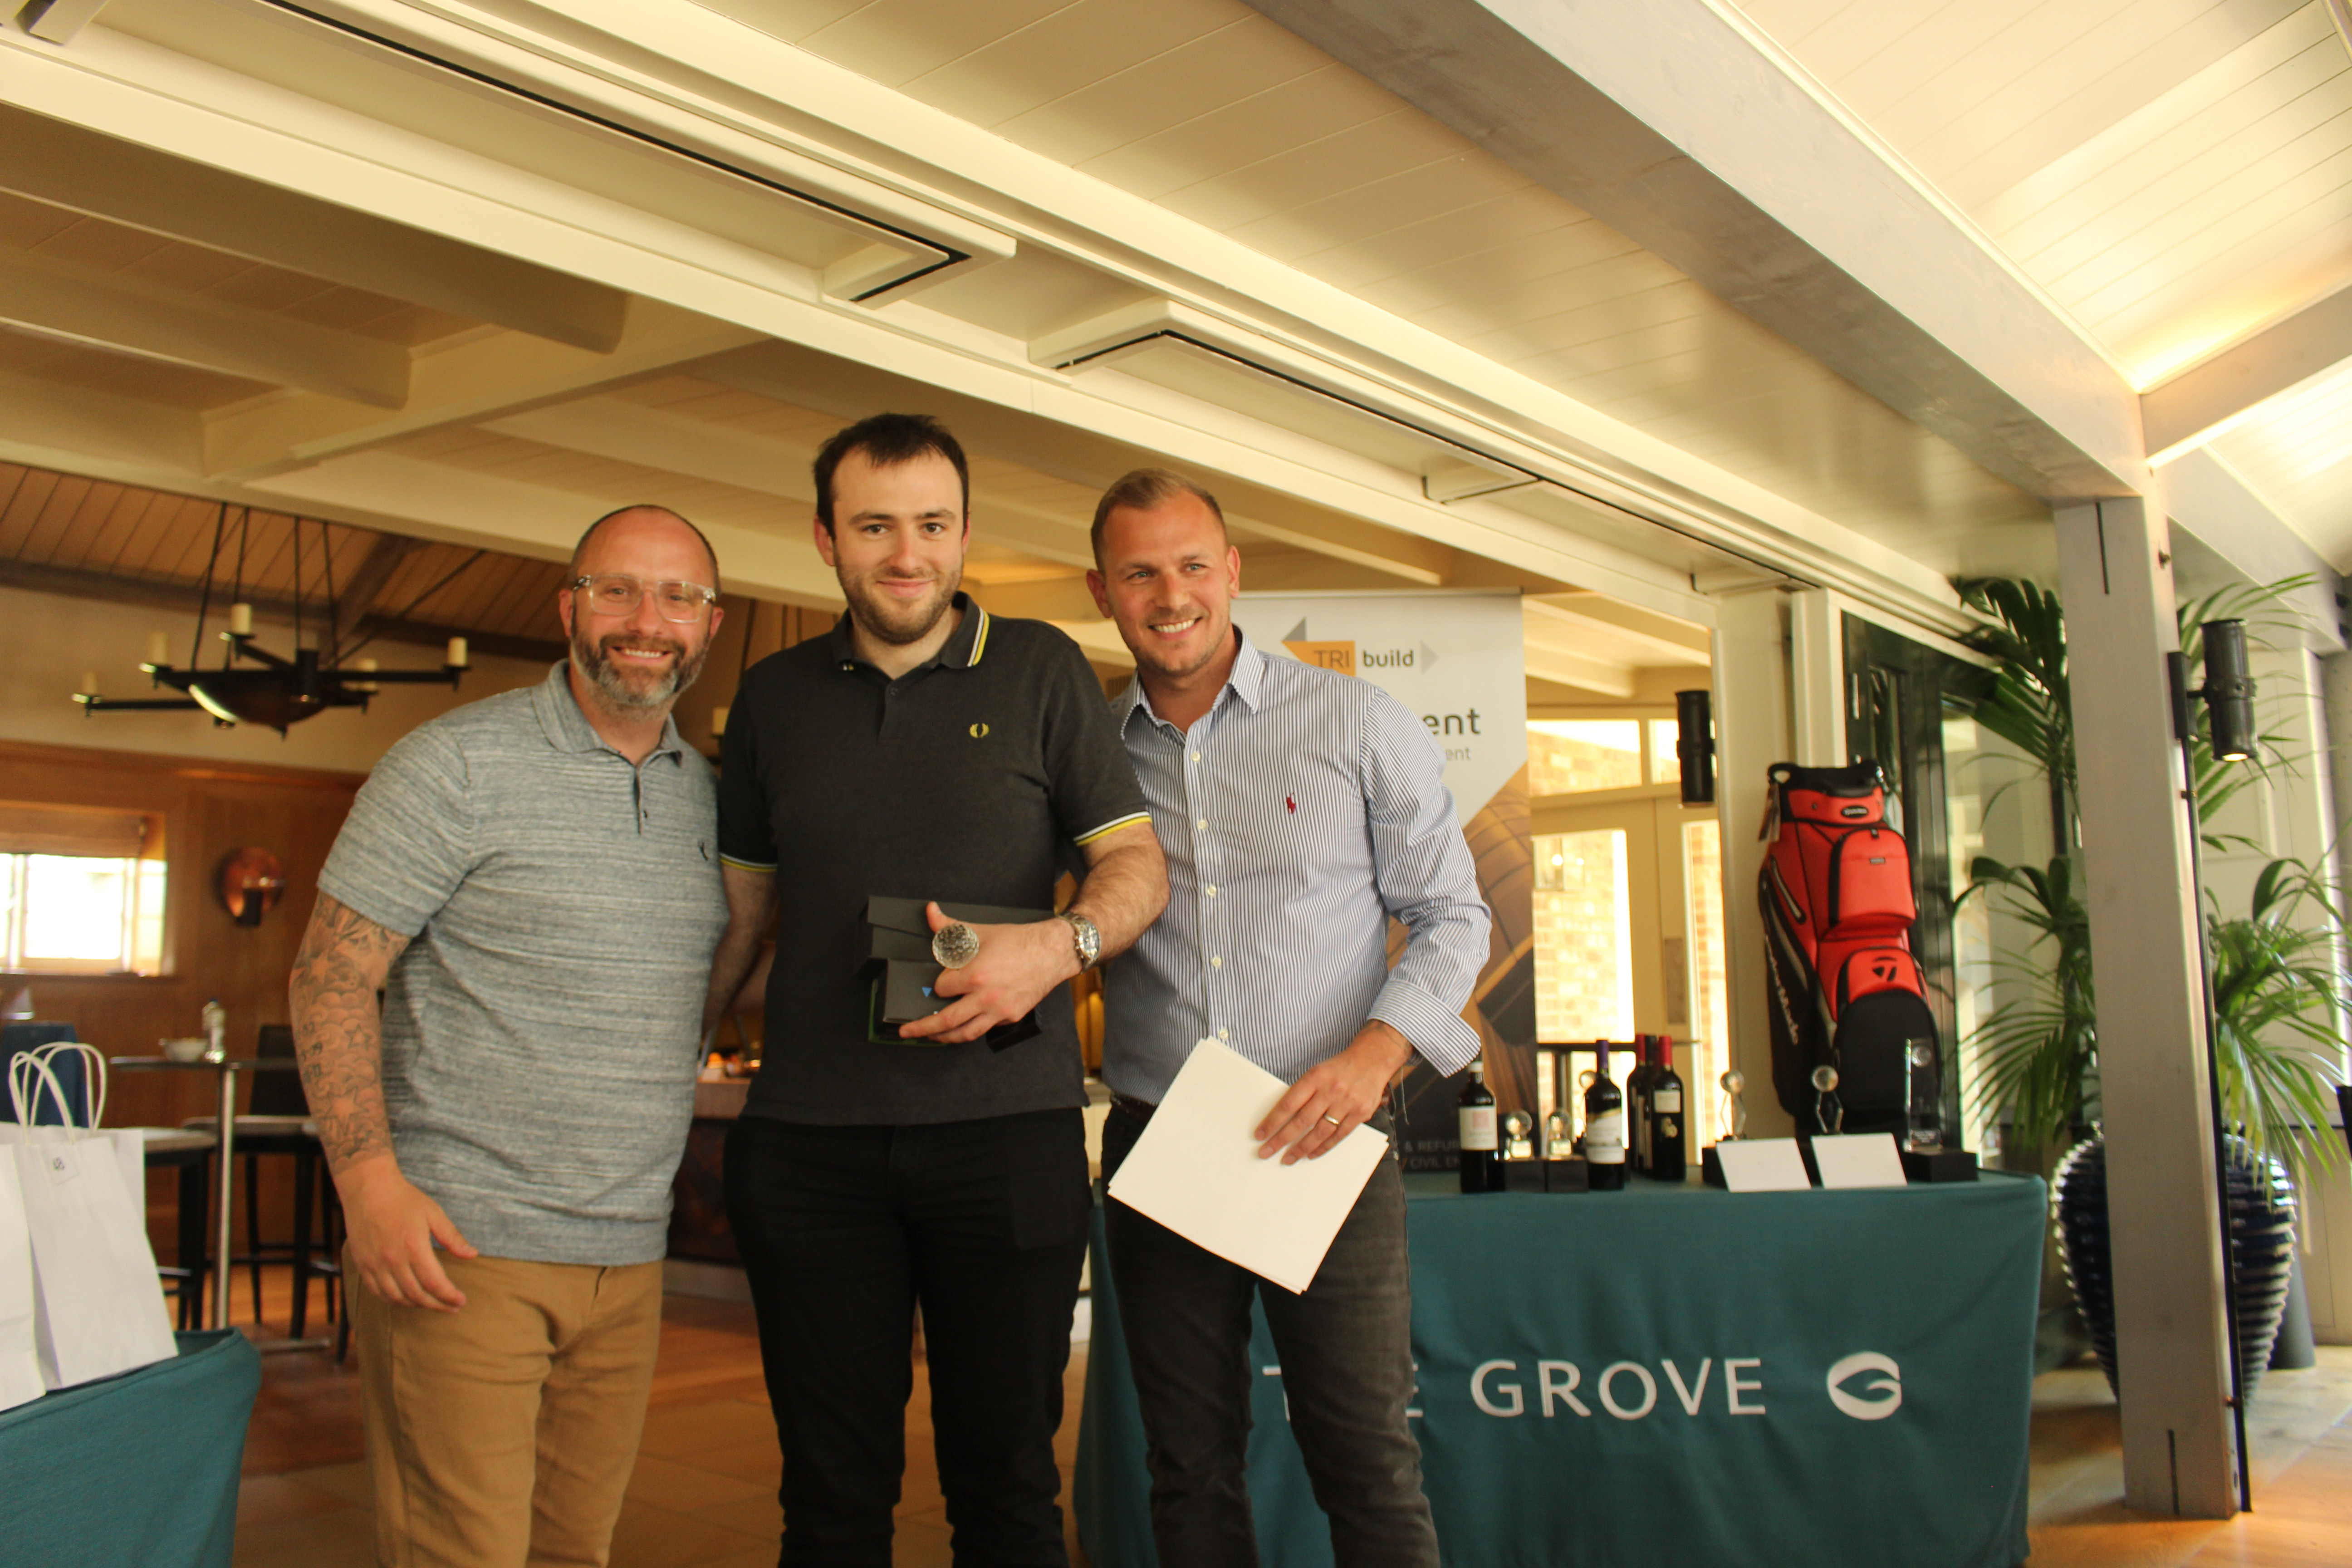 Tribuild Solutions Annual Golf Day 2019 At The Grove